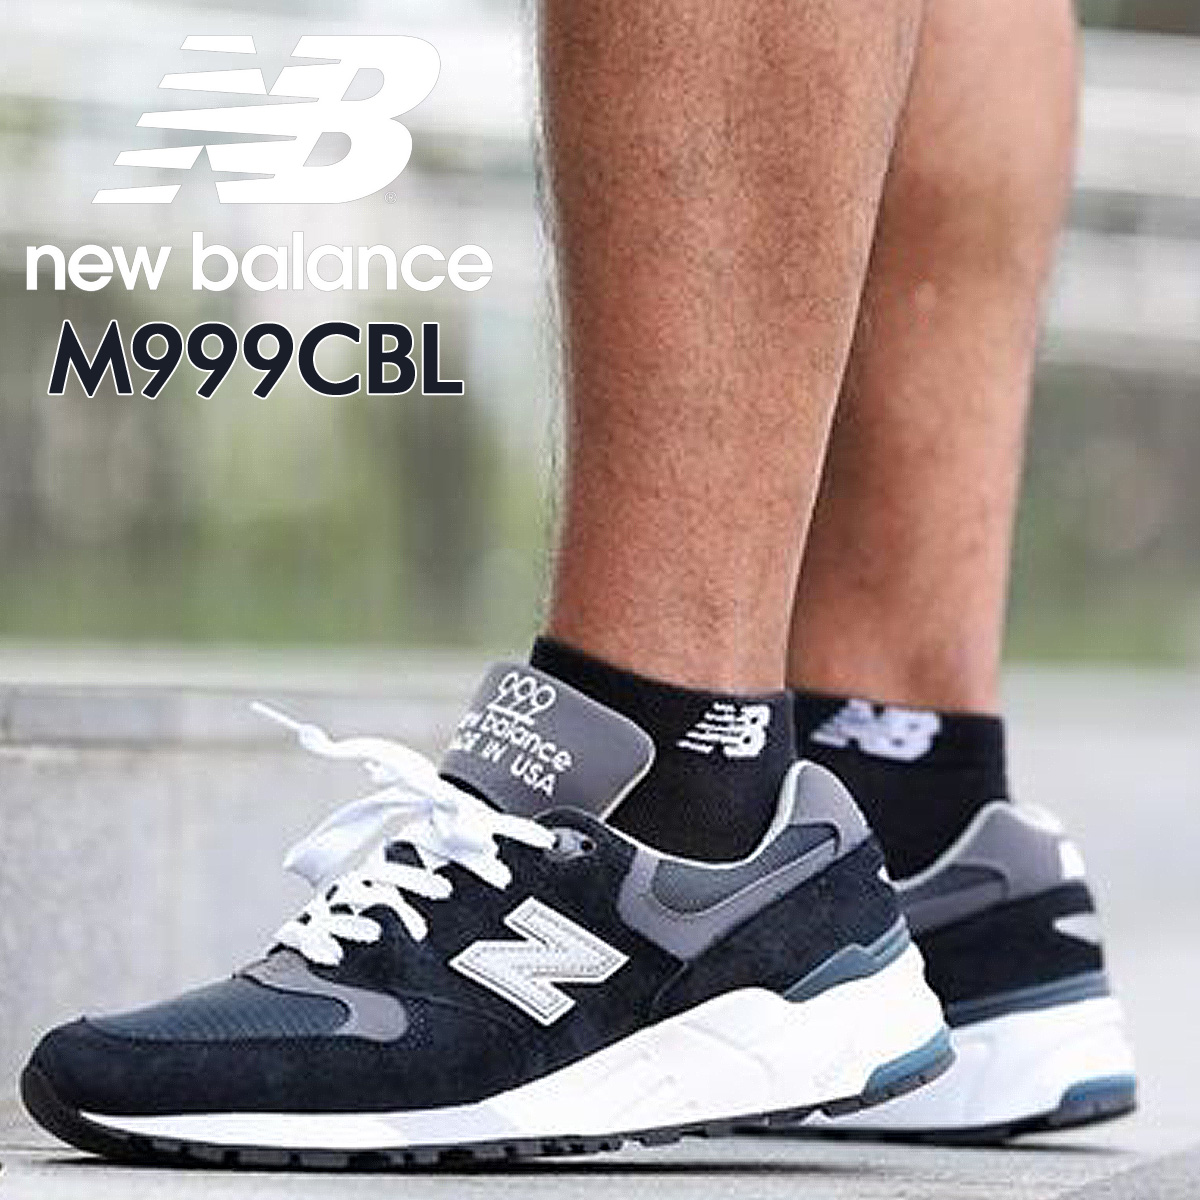 online store eb8bb 7c339 new balance M999CBL MADE IN USA New Balance 999 men's sneakers D Wise navy  [193]